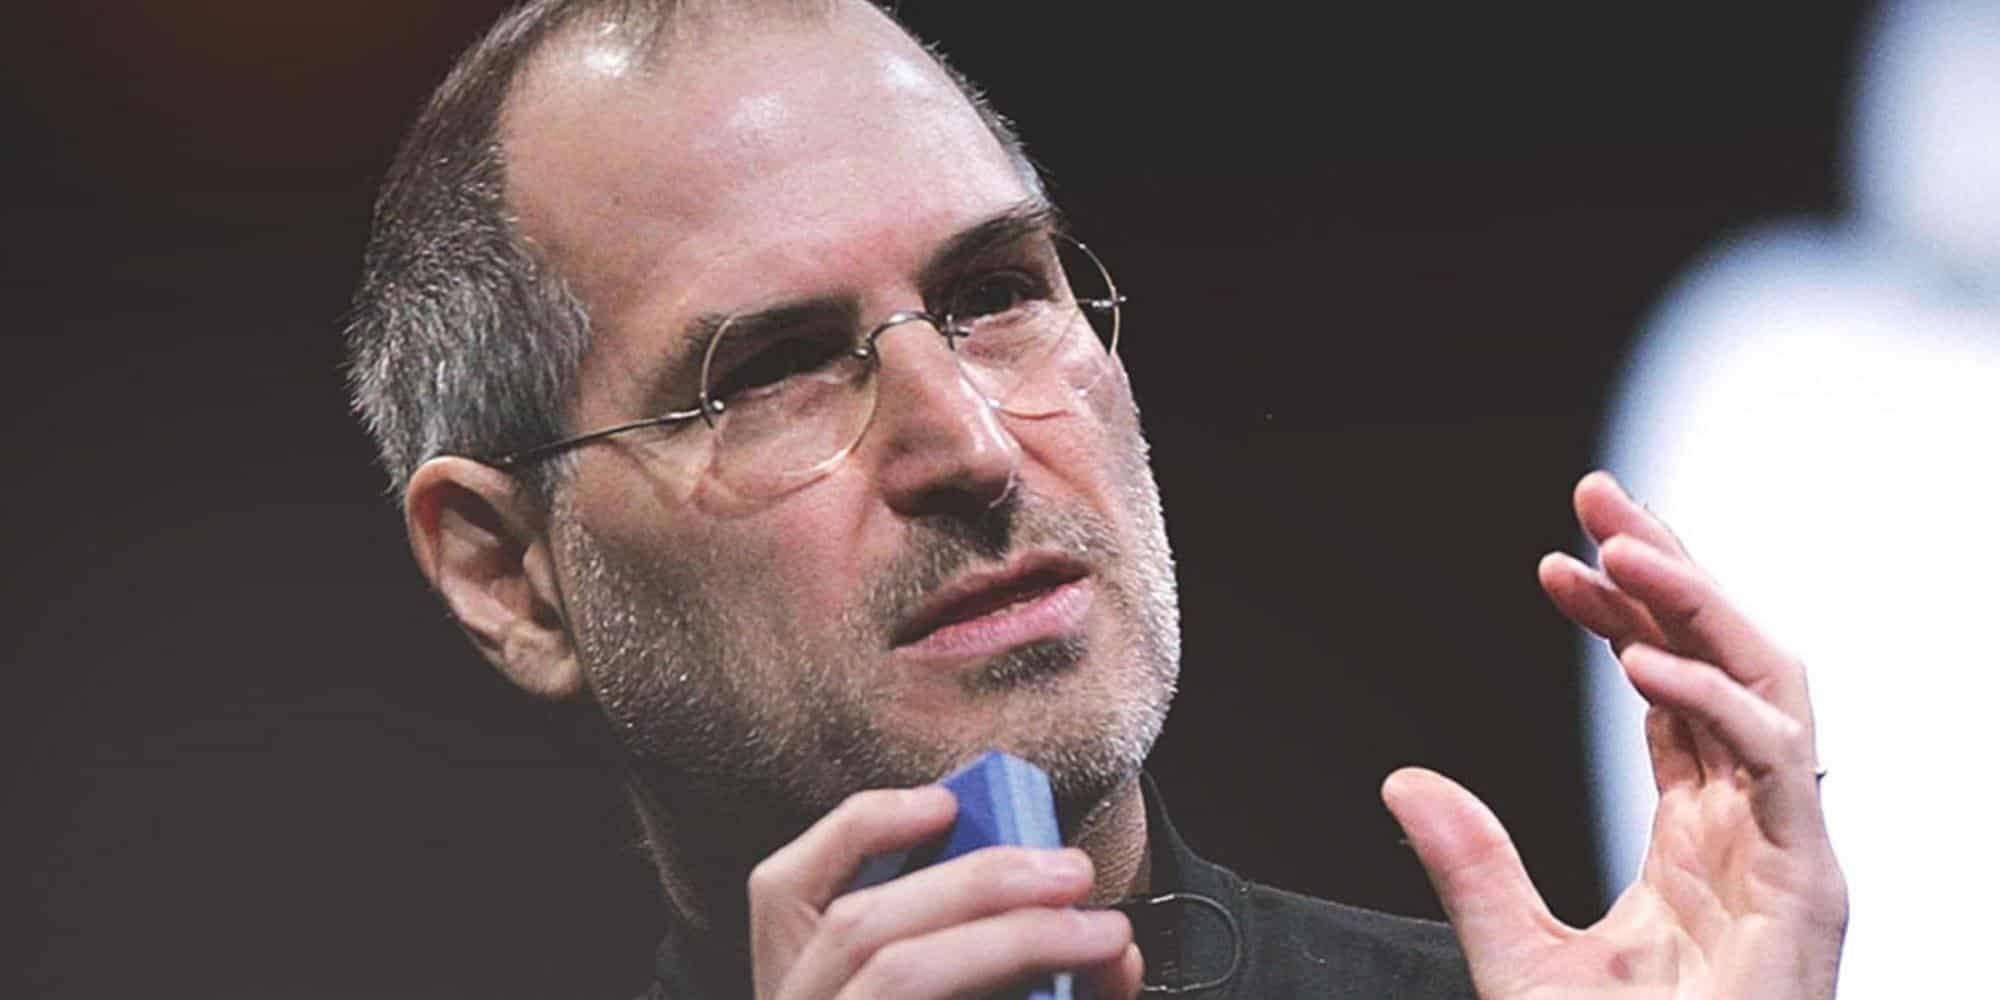 Steve Jobs speaking at an event